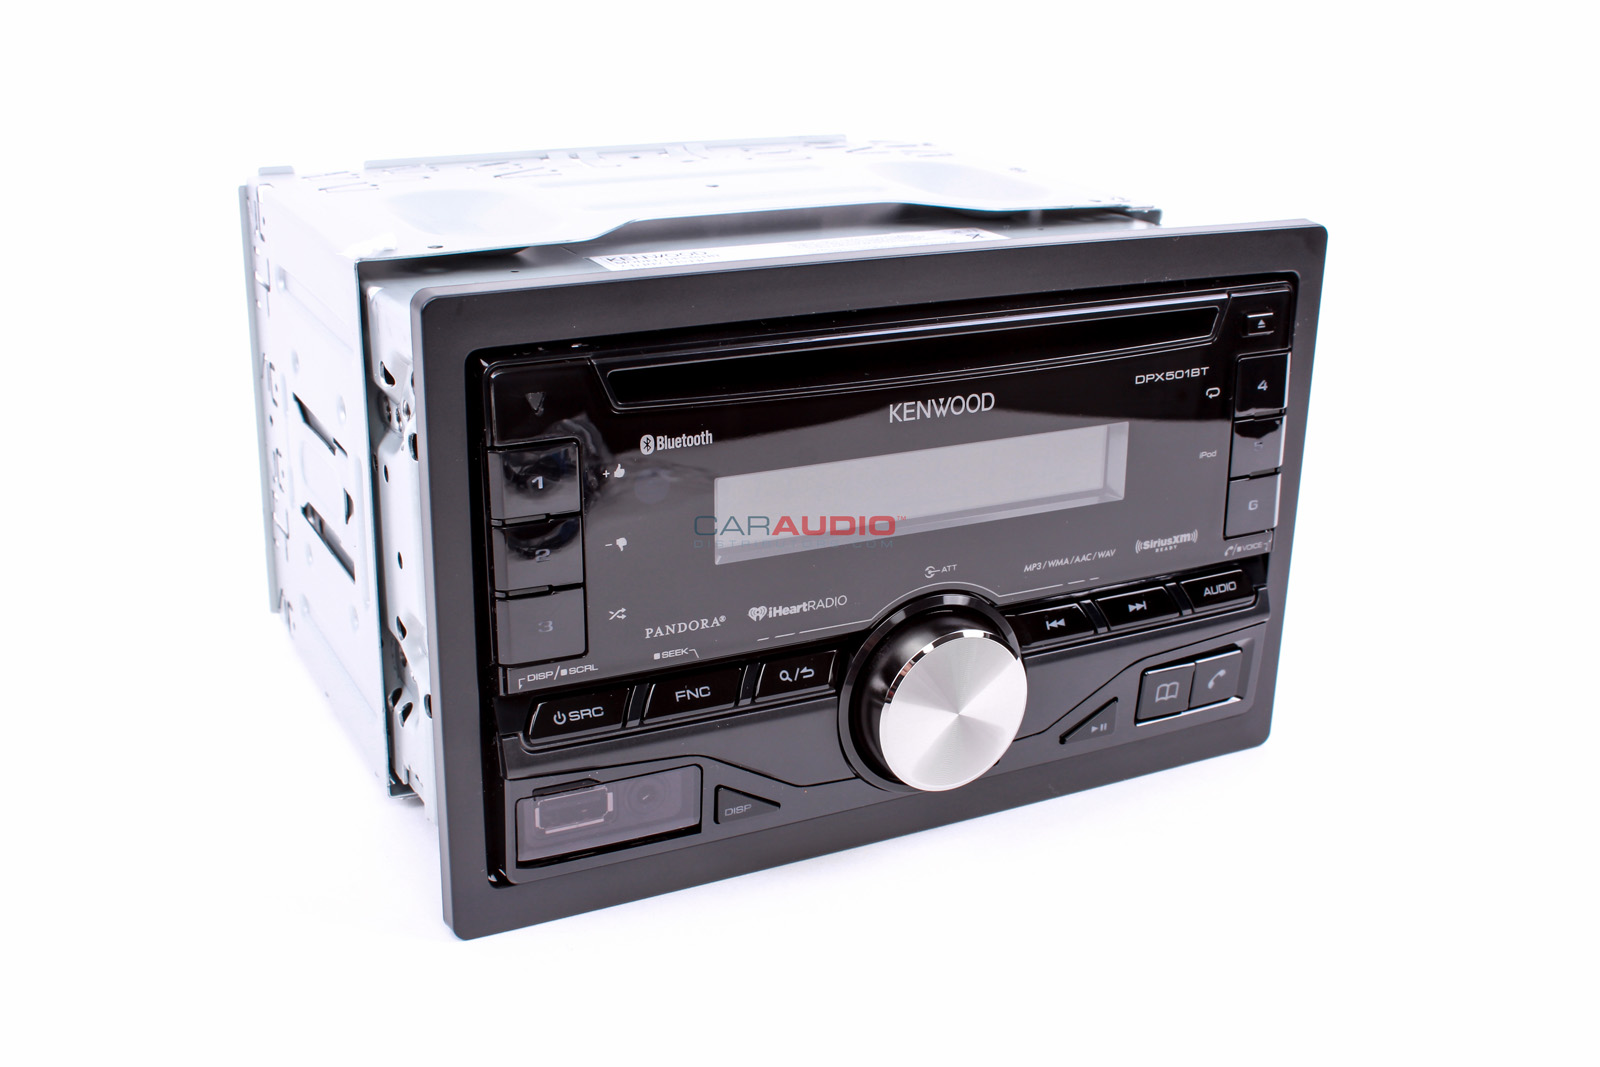 Car Stereo Bluetooth: NEW KENWOOD DPX501BT IN DASH DOUBLE DIN CAR STEREO CD/MP3